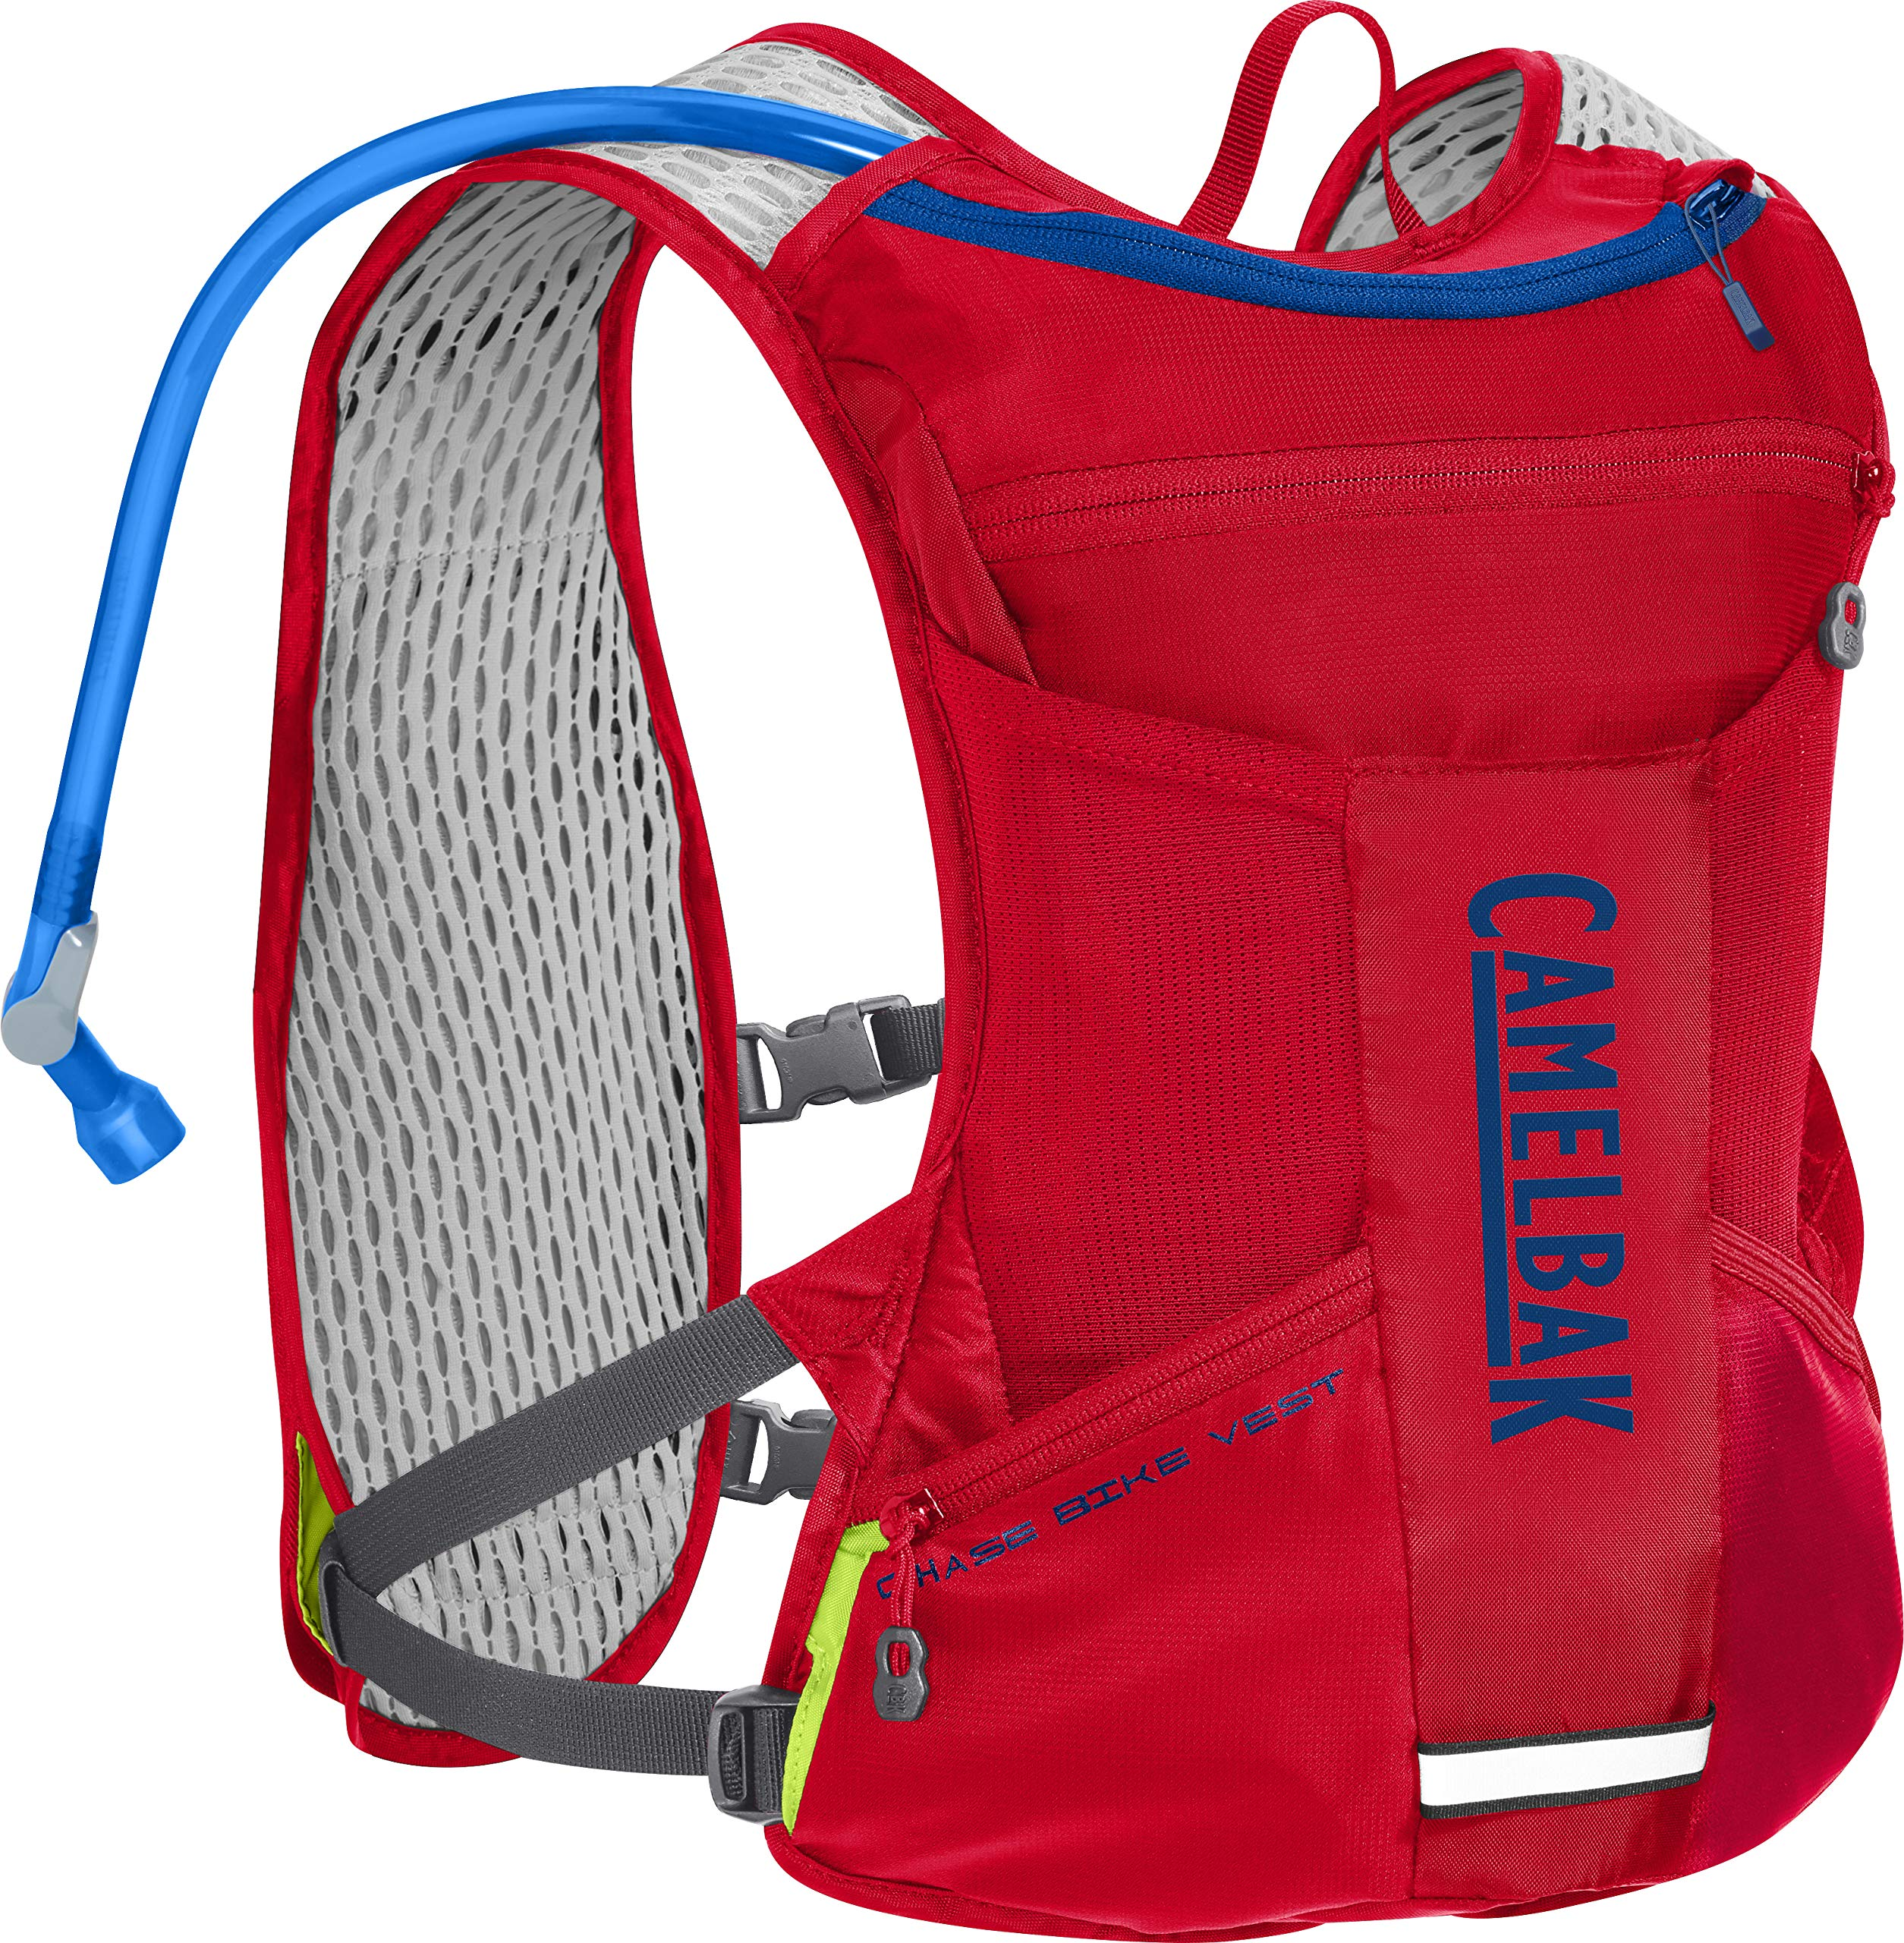 CamelBak Chase Bike Vest 50 oz, Racing Red/Pitch Blue, One Size by CamelBak (Image #1)